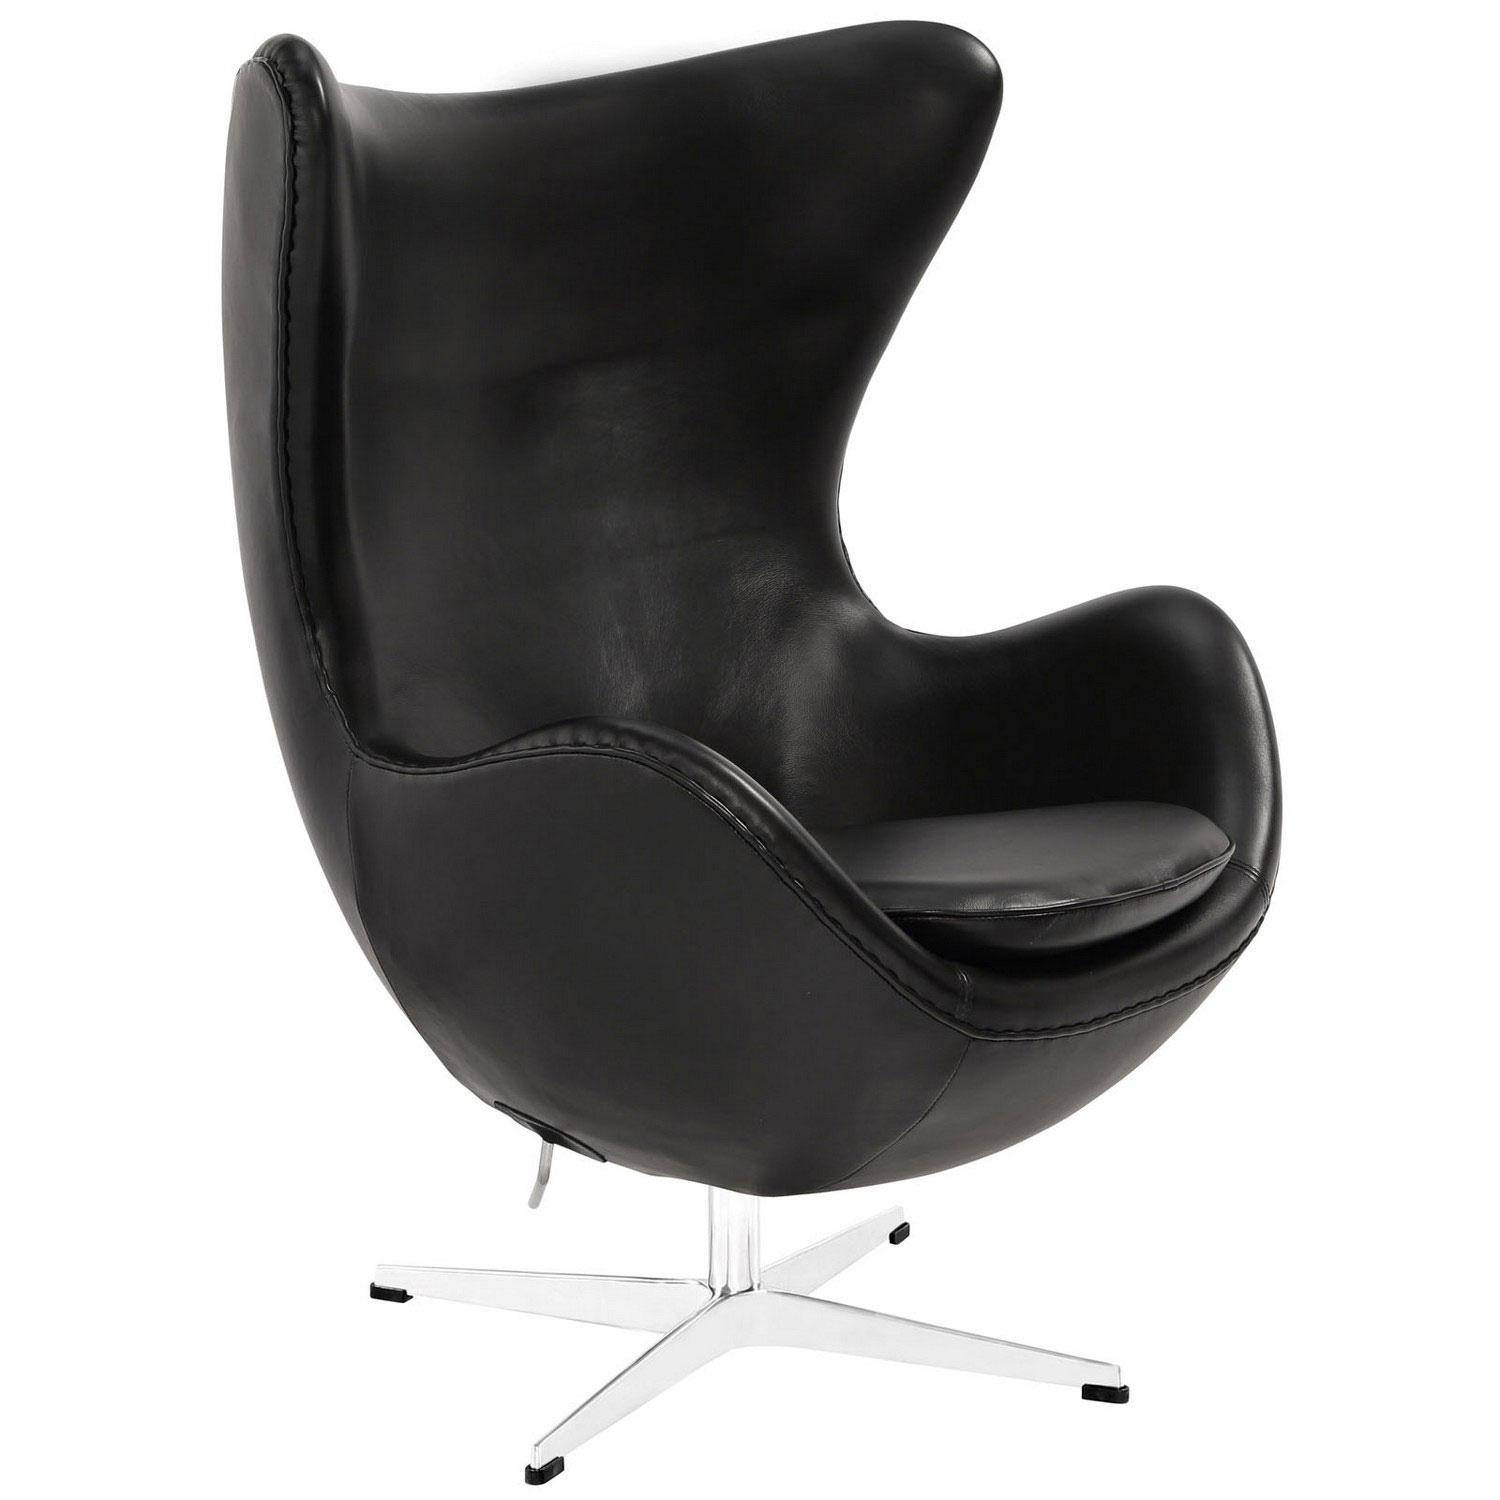 Modway Glove Leather Lounge Chair - Black